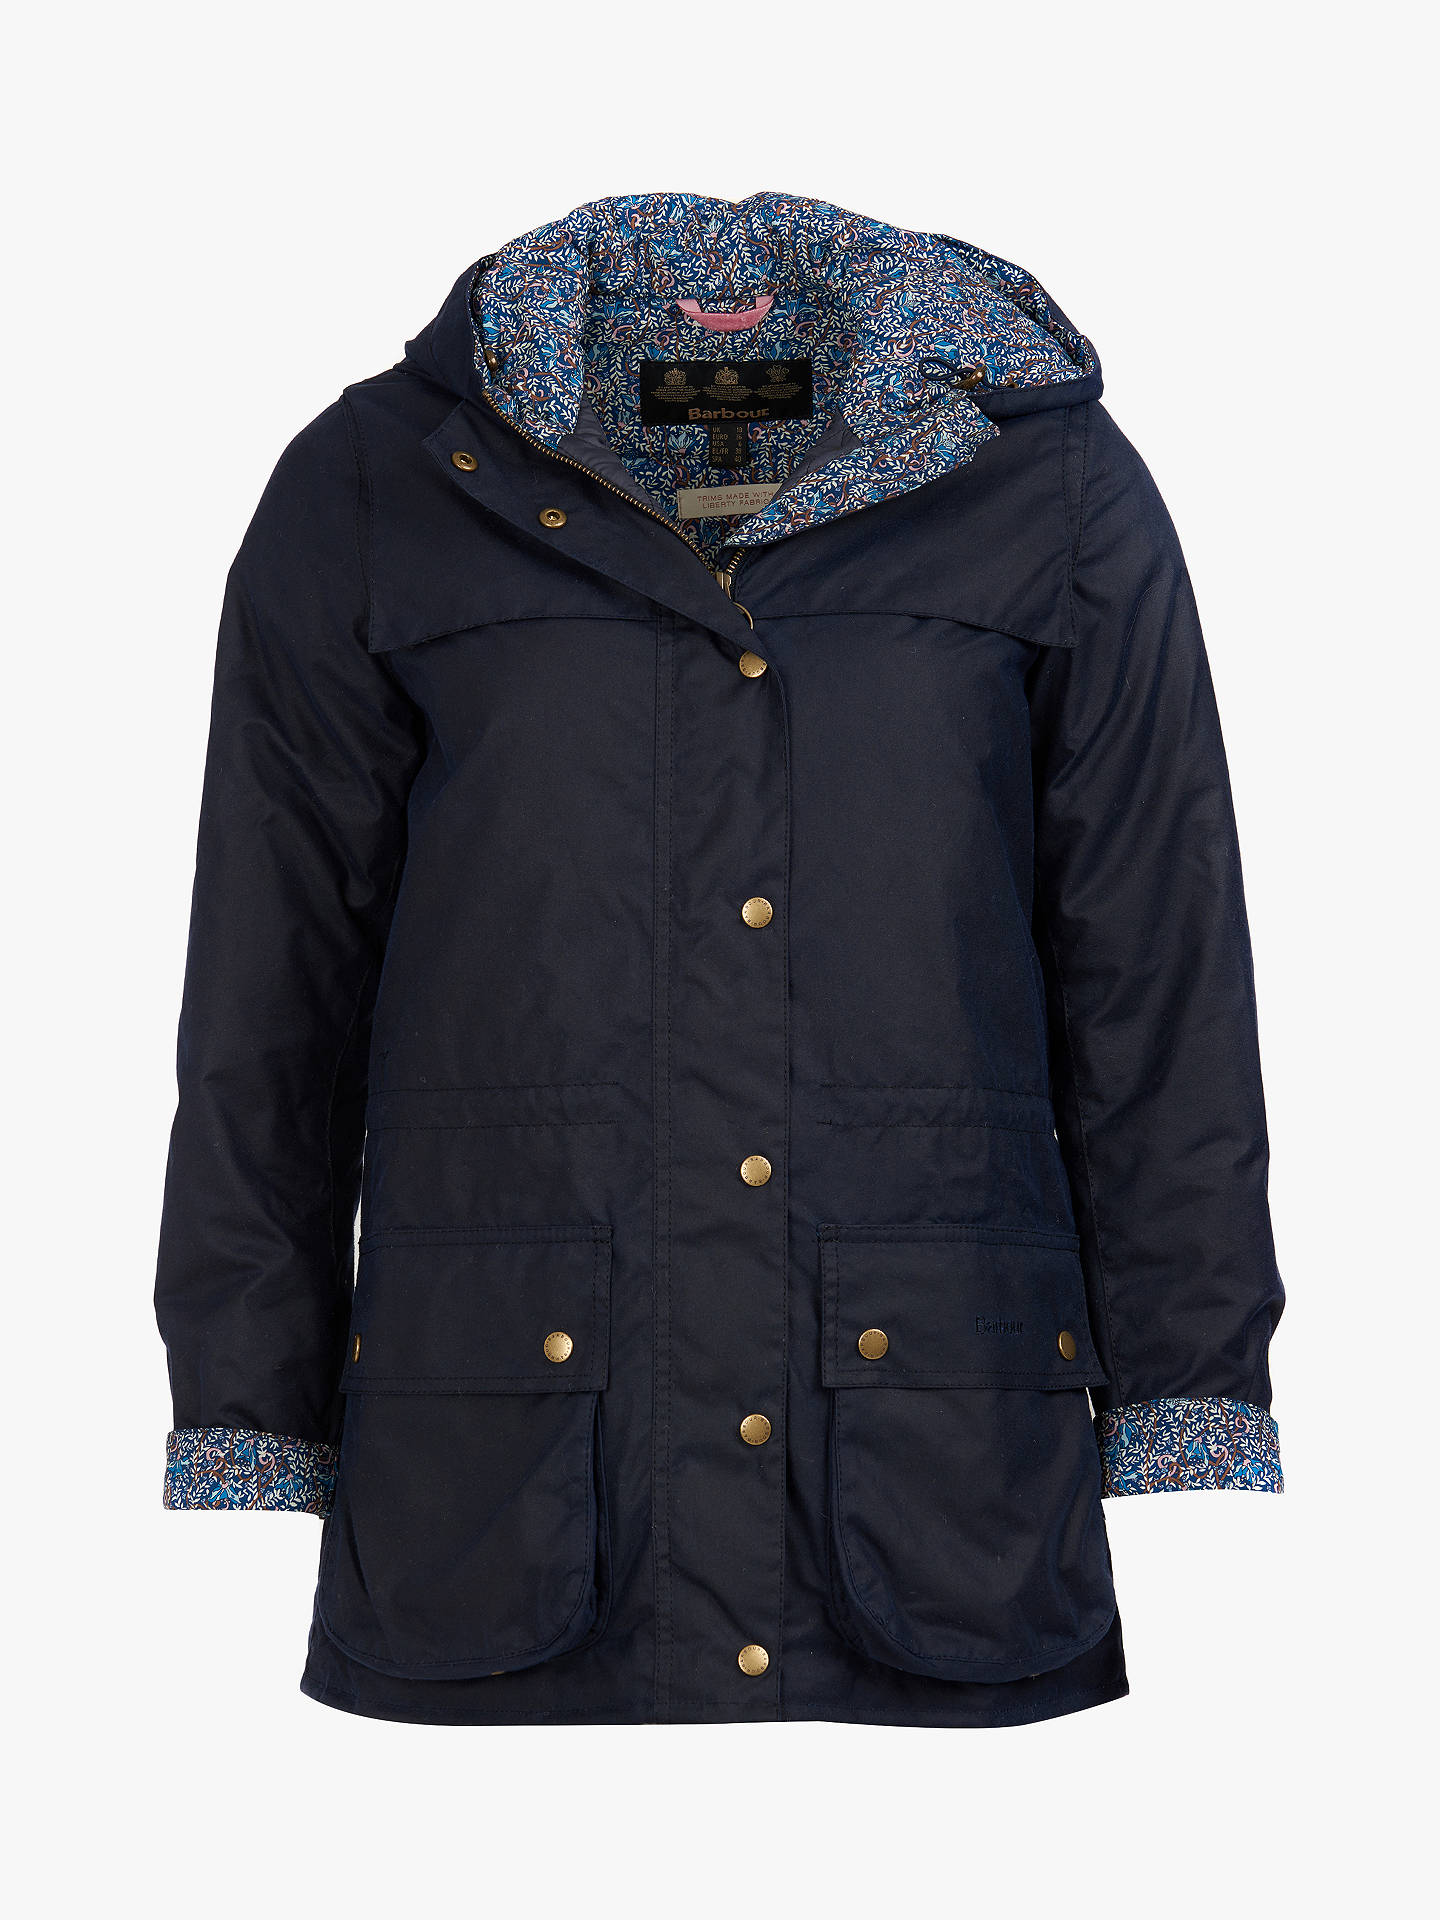 BuyBarbour Blaise Hooded Waxed Jacket, Navy, 8 Online at johnlewis.com